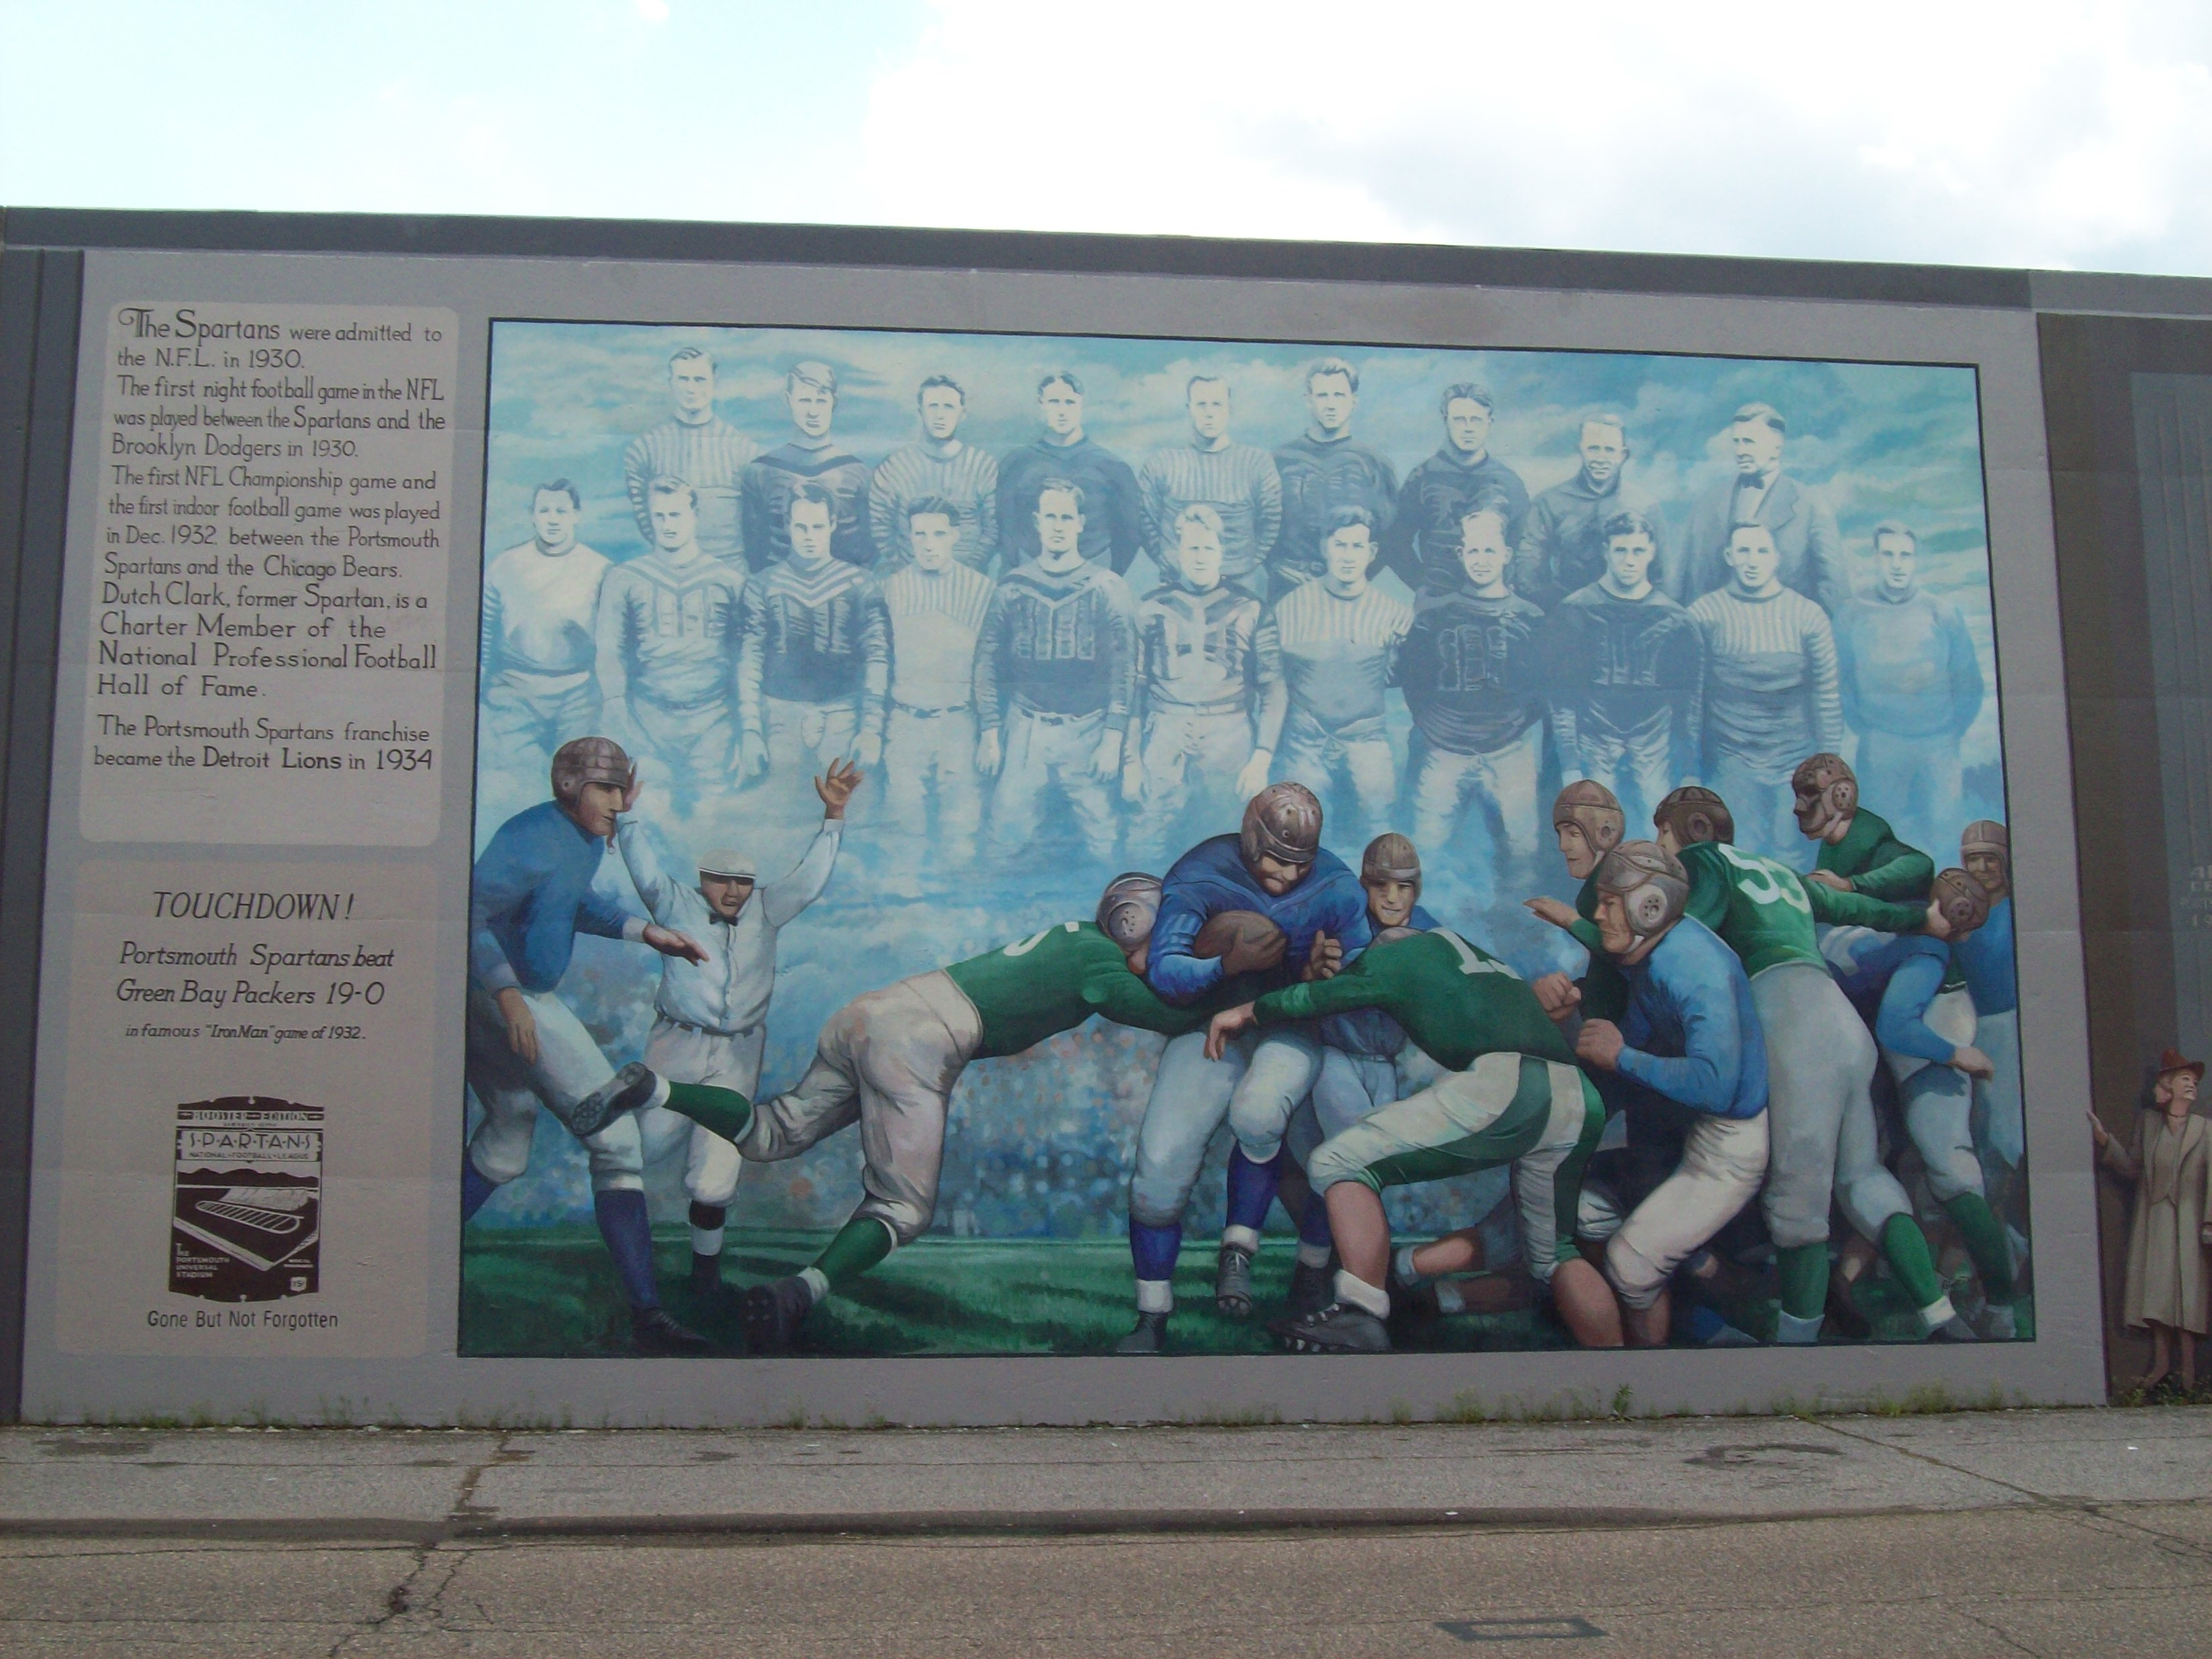 Portsmouth, OH floodwall mural: Portsmouth Spartans